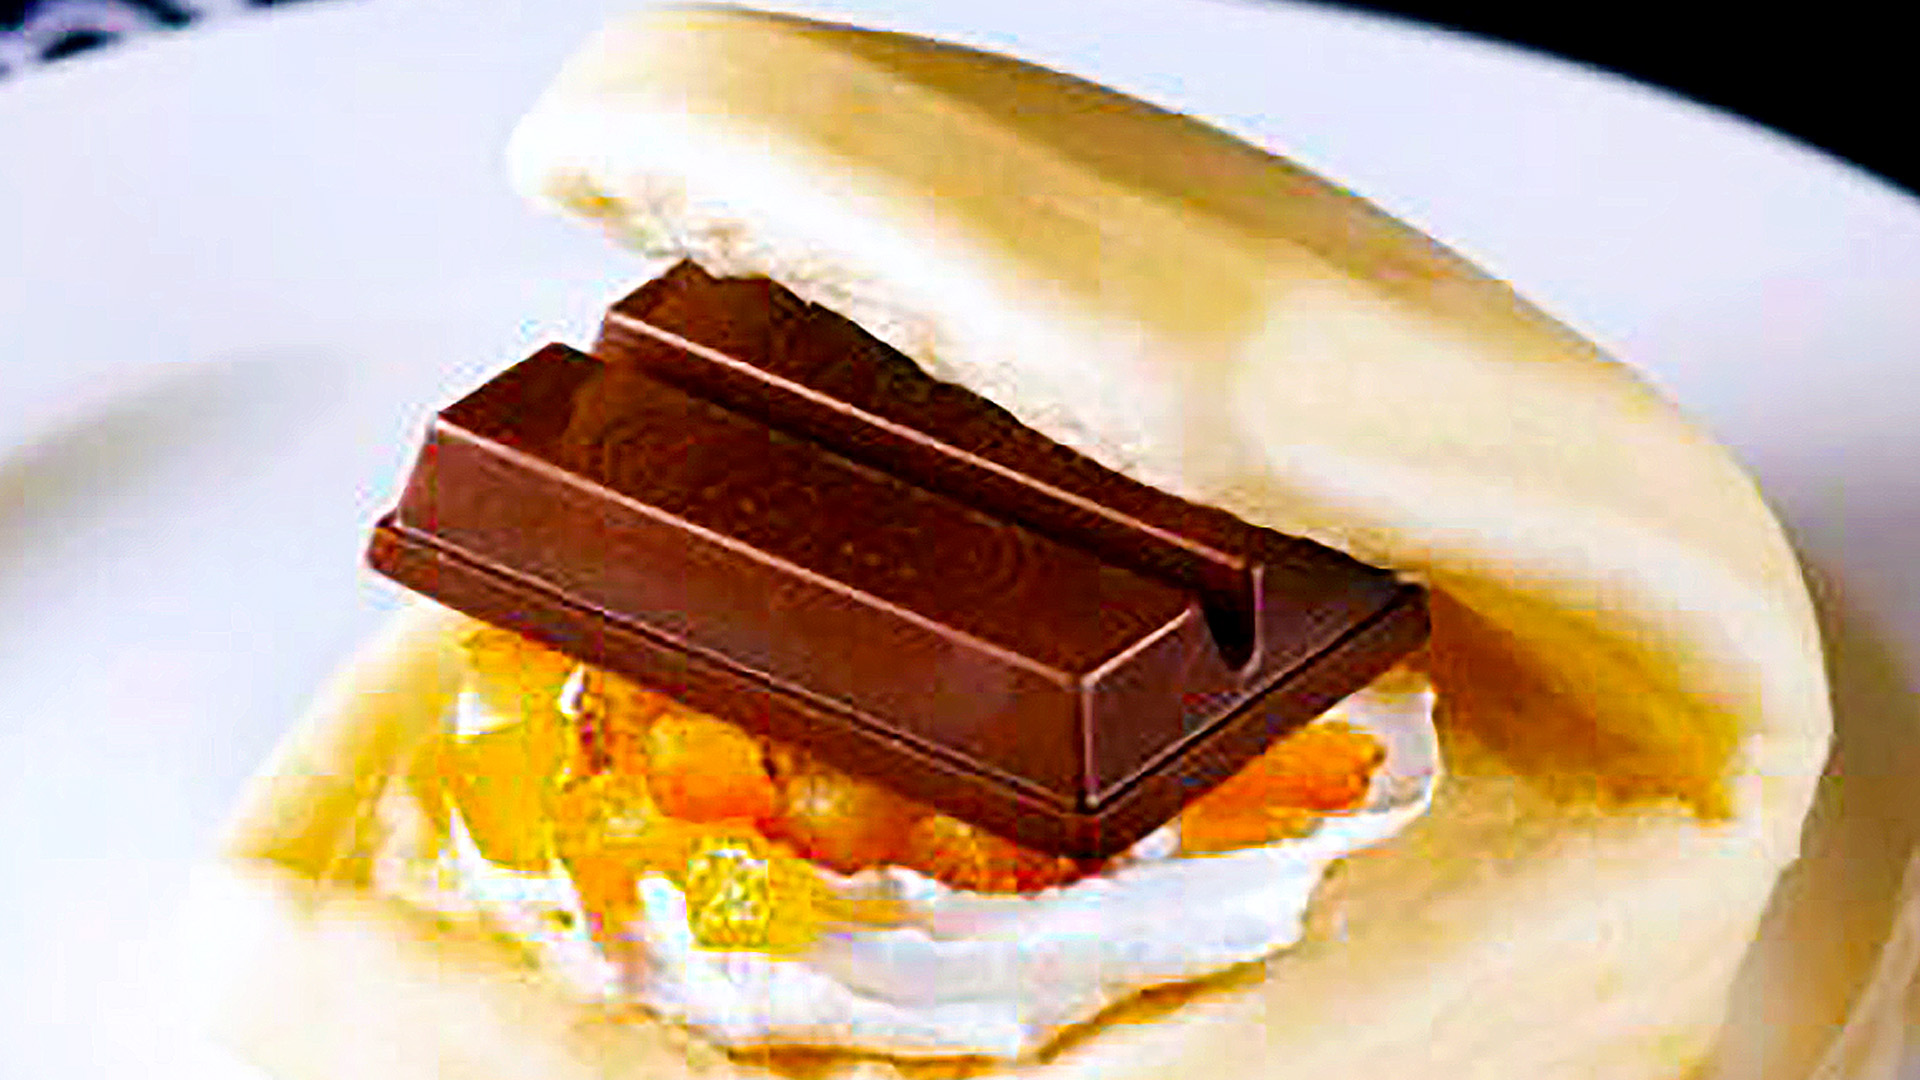 Kit Kat Sandwich Released in Japanese Fast Food Chain, First Kitchen